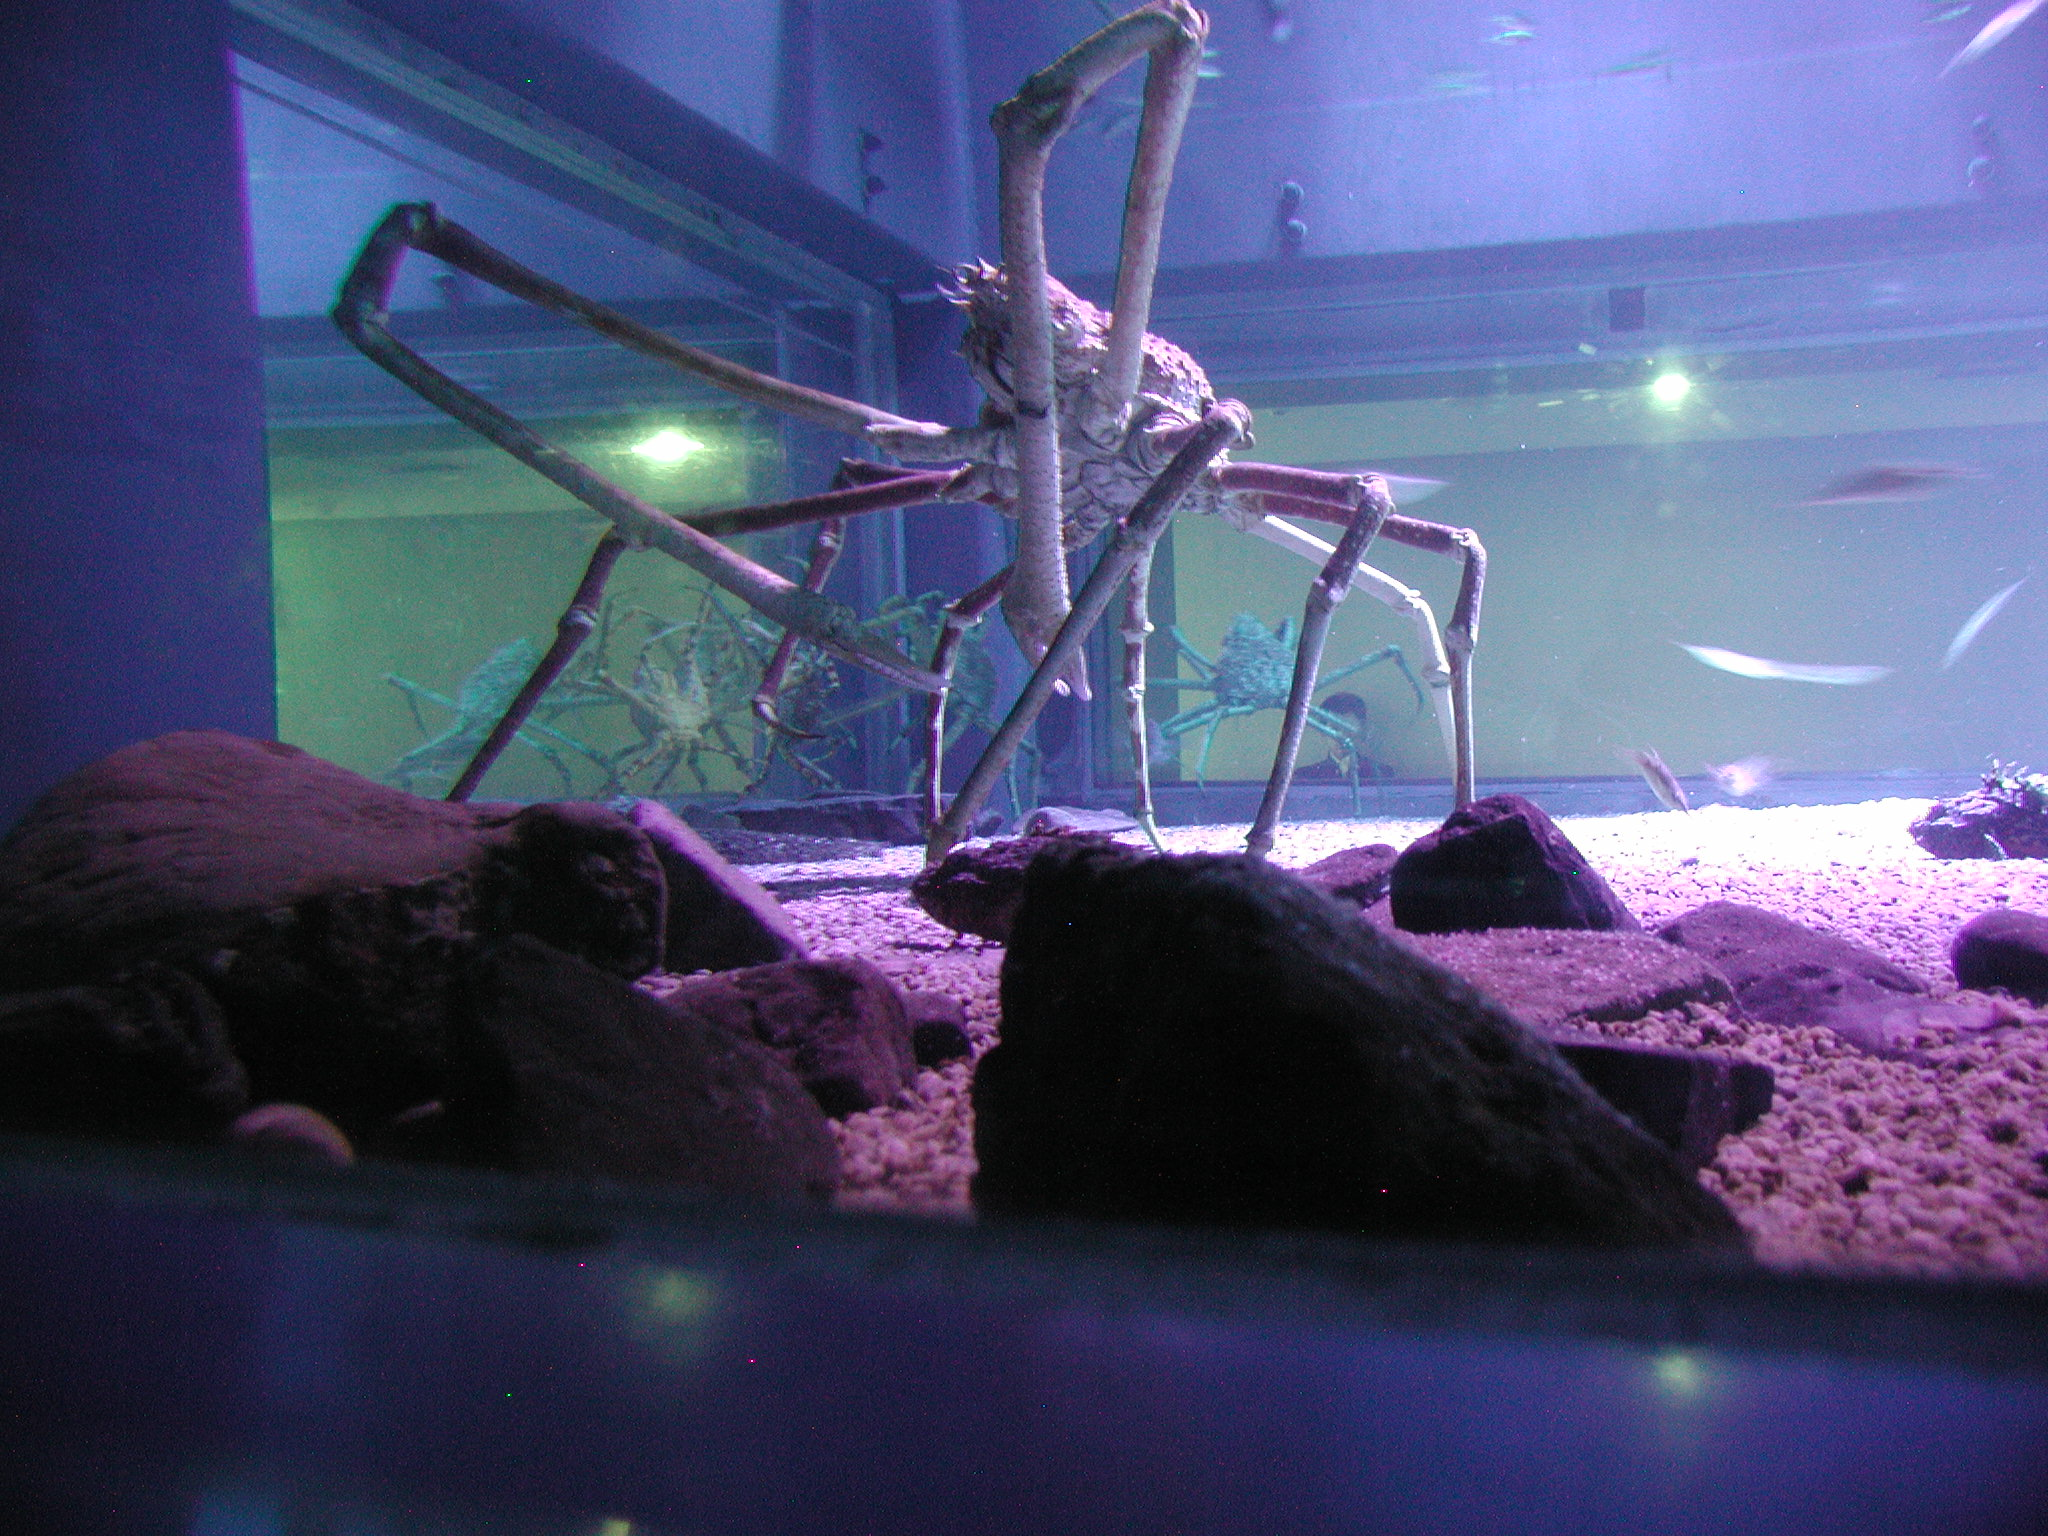 http://upload.wikimedia.org/wikipedia/commons/2/2a/Spider_crab_at_the_Kaiyukan_in_Osaka%2C_Japan.JPG